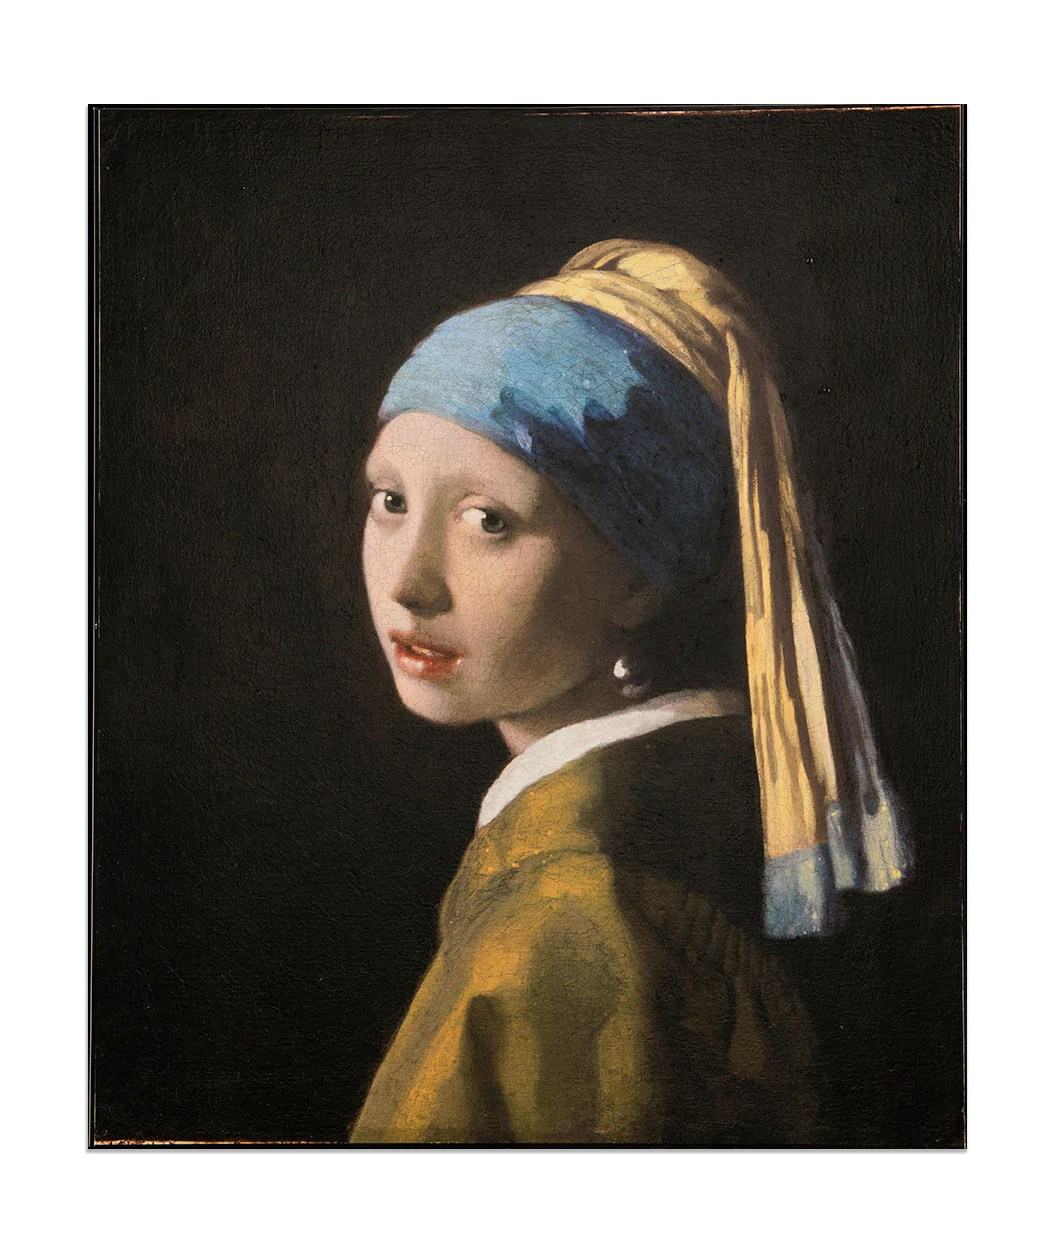 La Joven De La Perla Pintura Purchase A 3d Re Creation Of Girl With A Pearl Earring By